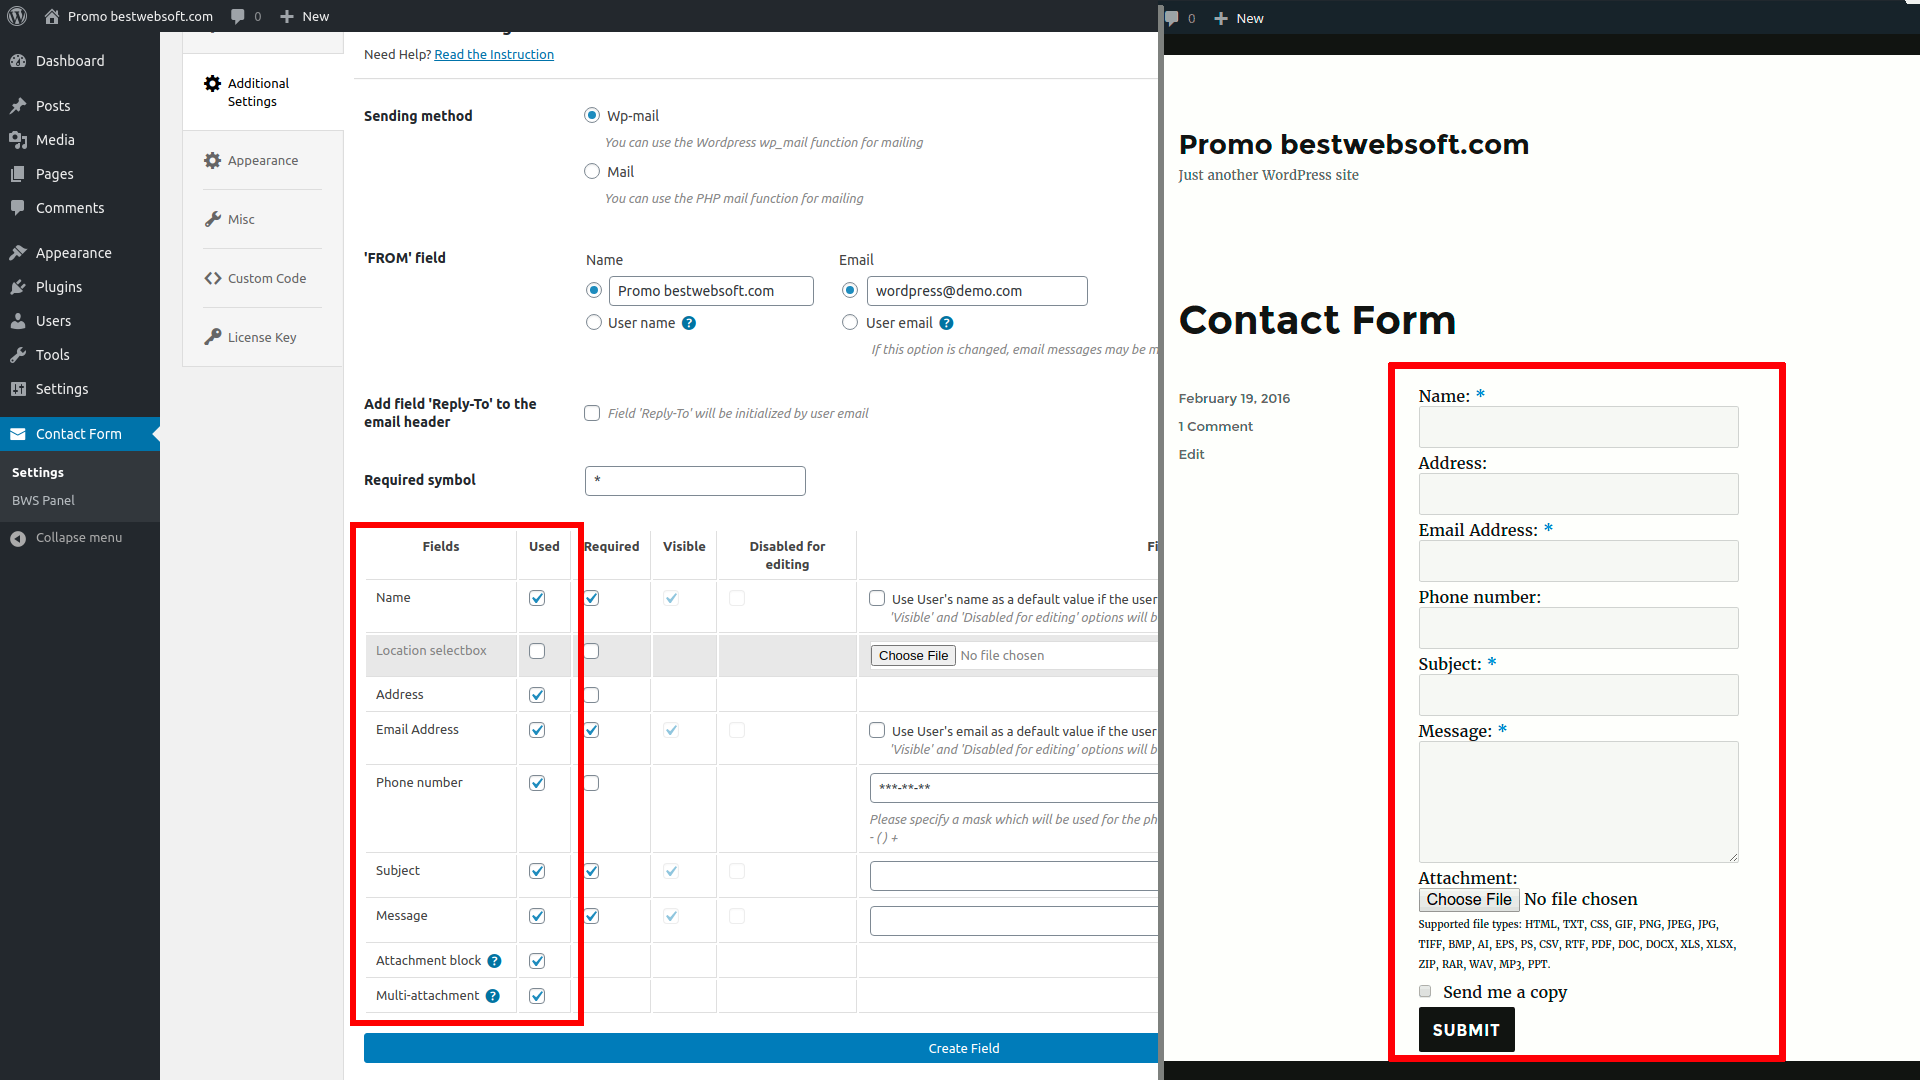 contact form screenshot 14